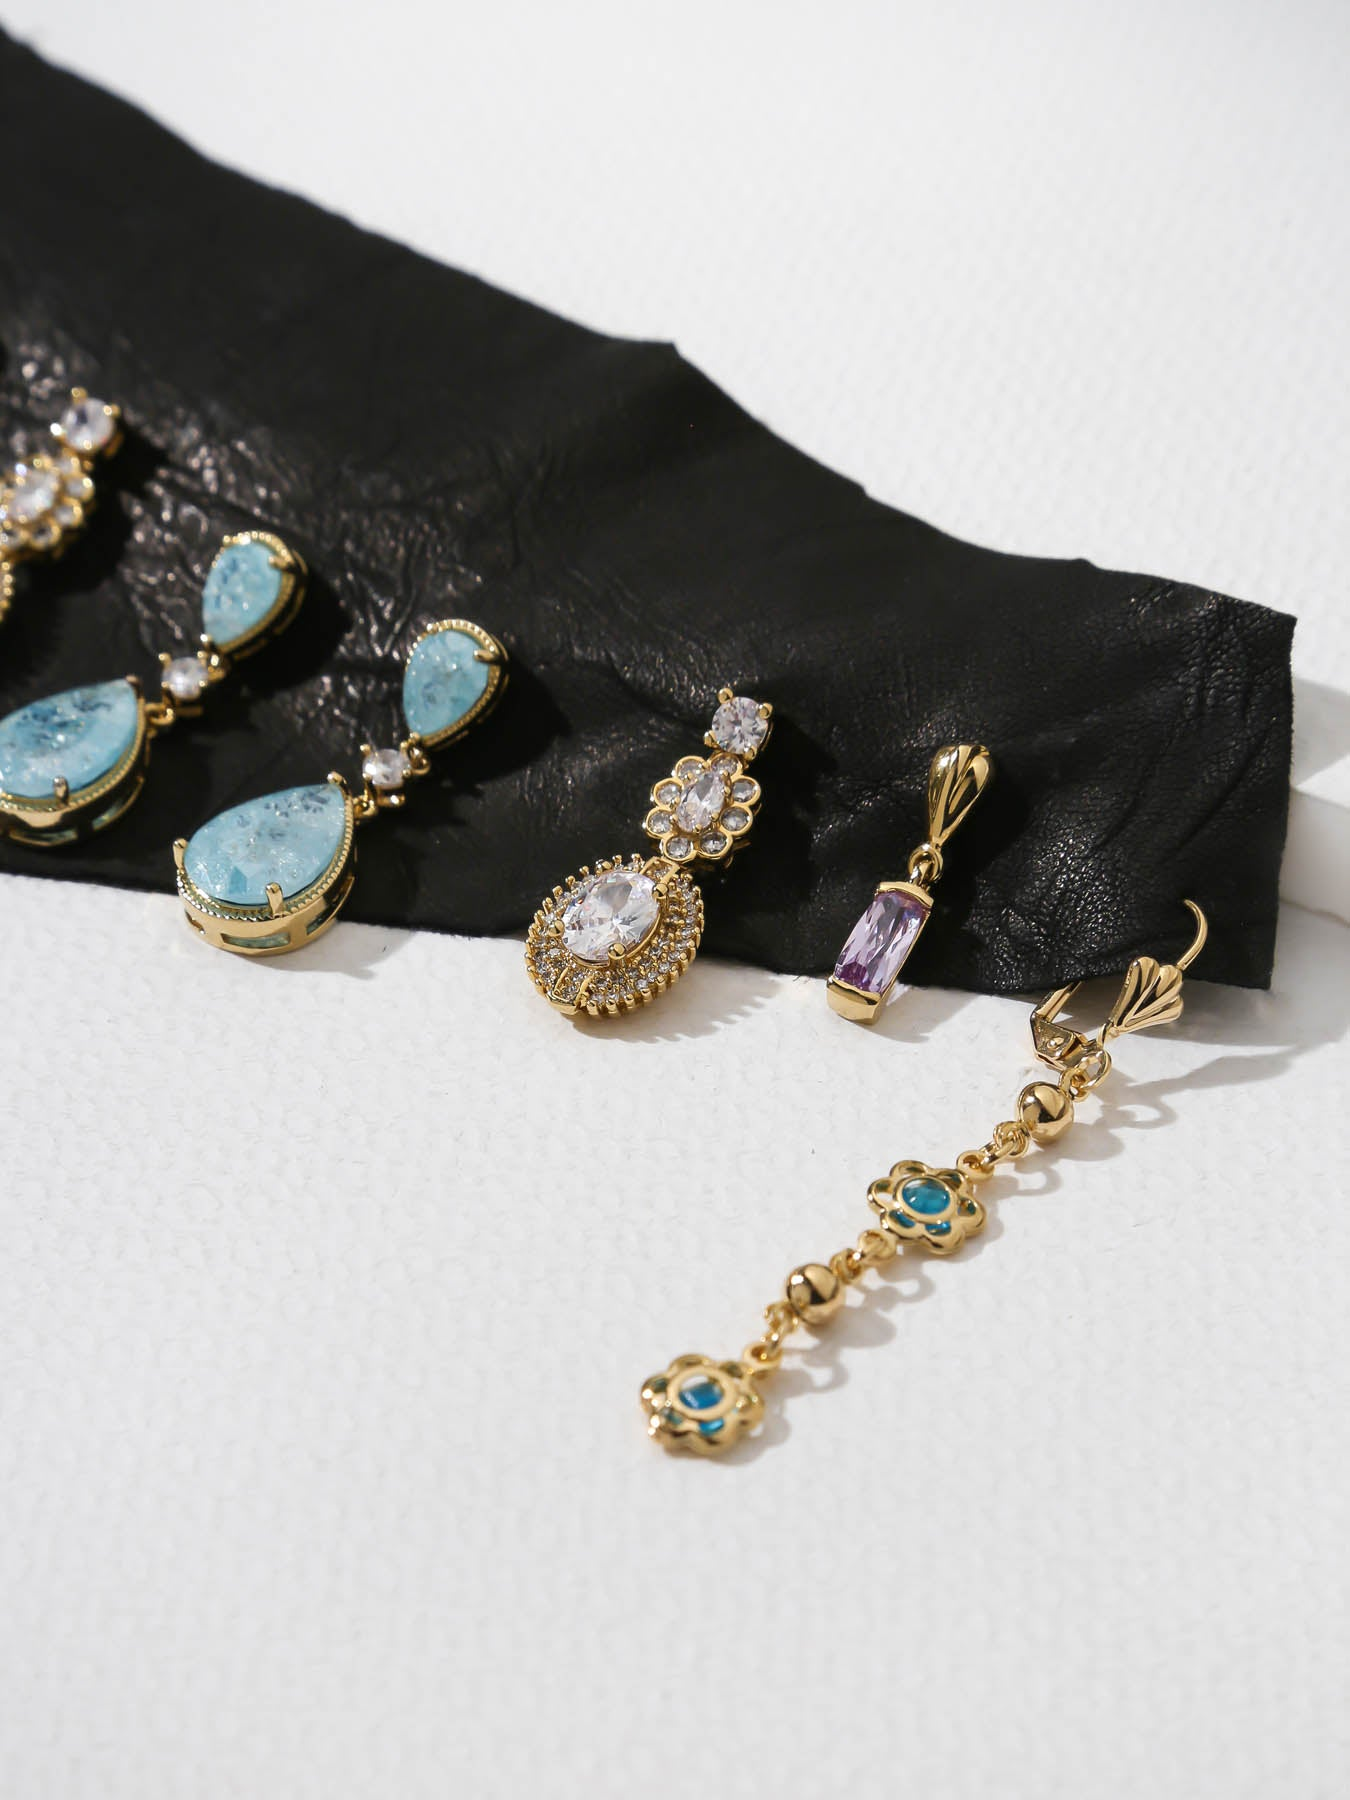 The Aqua Quartz Earring Set